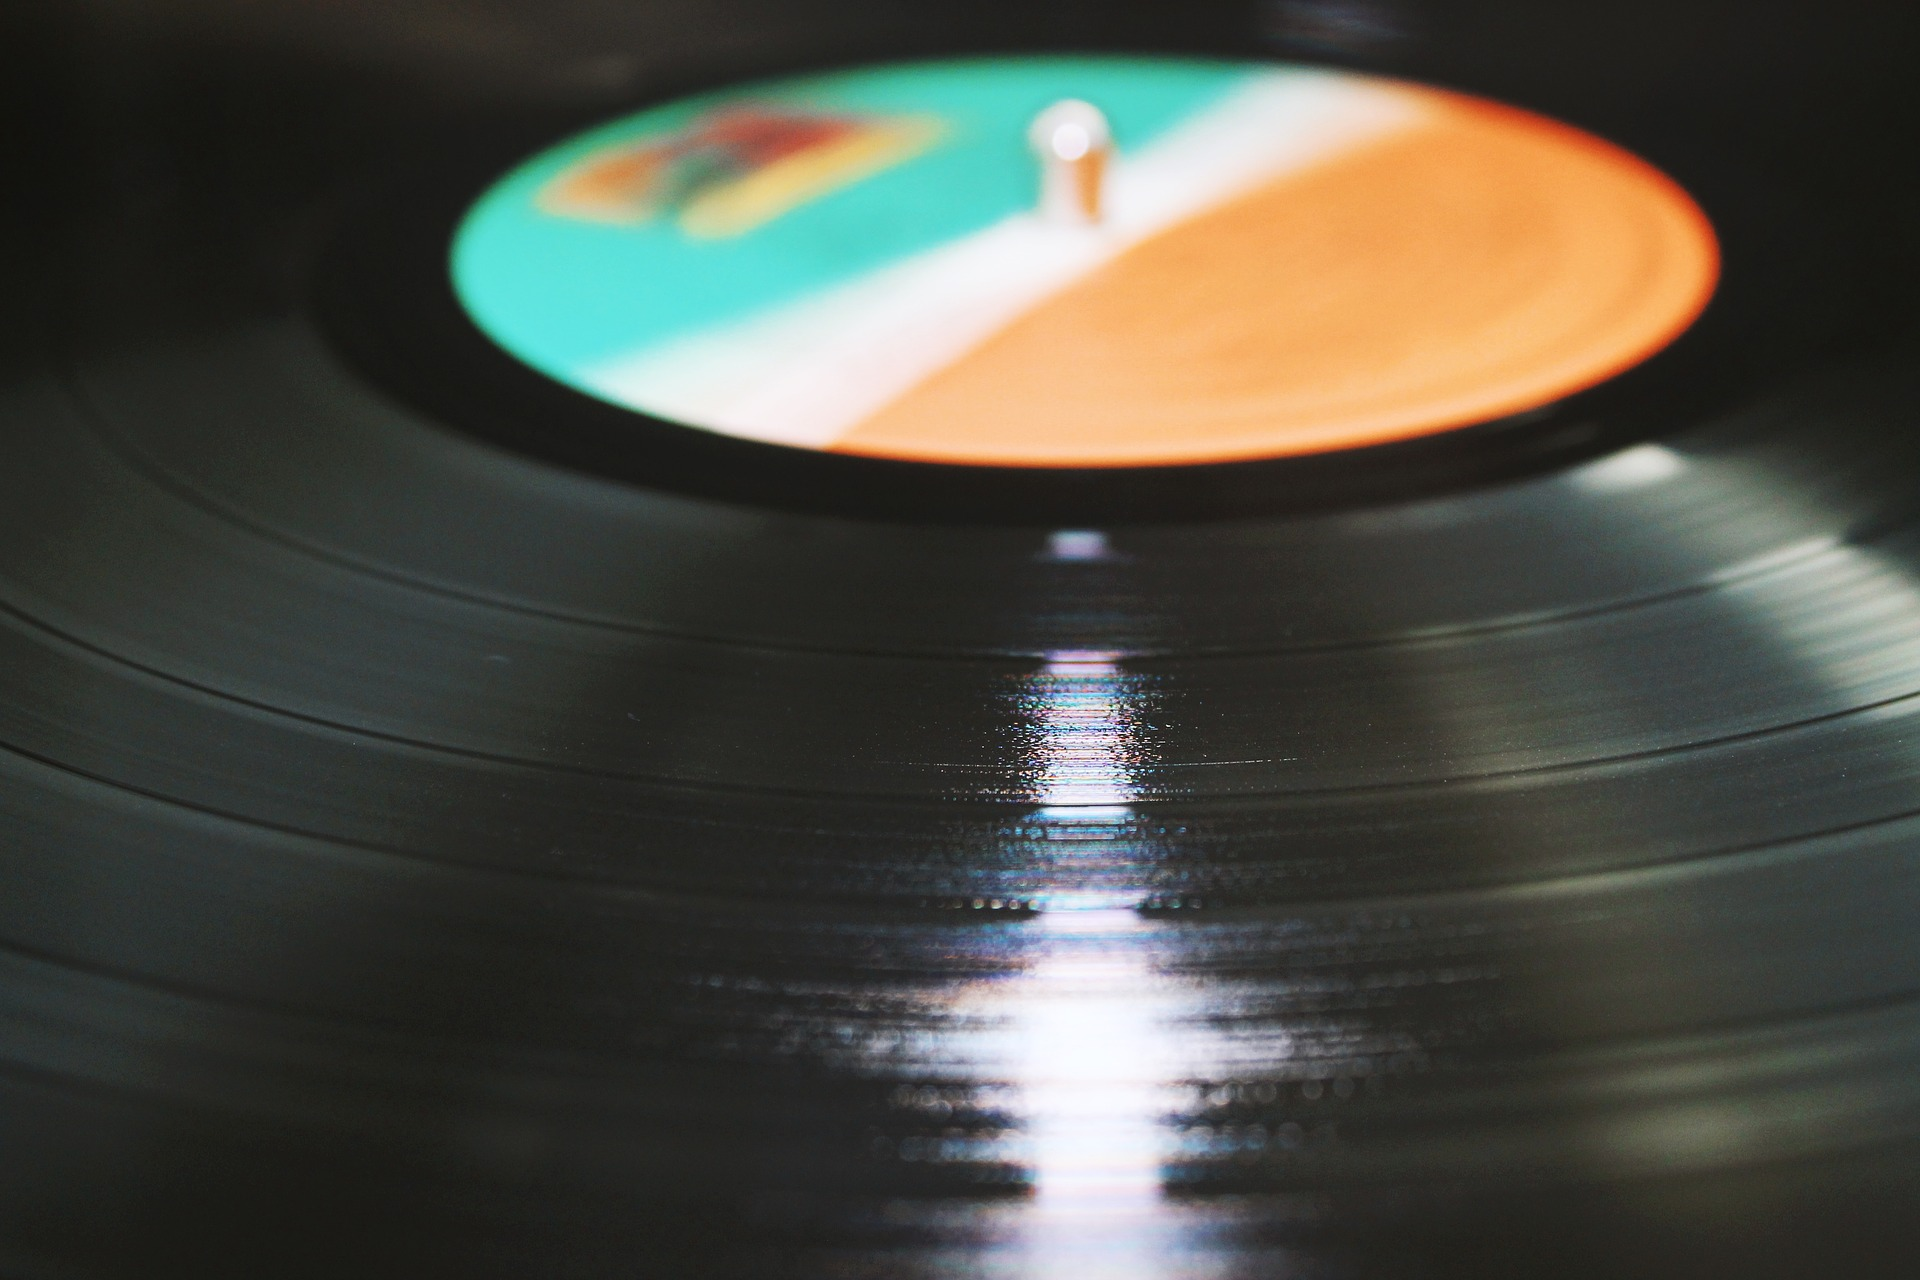 'Vinyl', used with permission from    Pexels